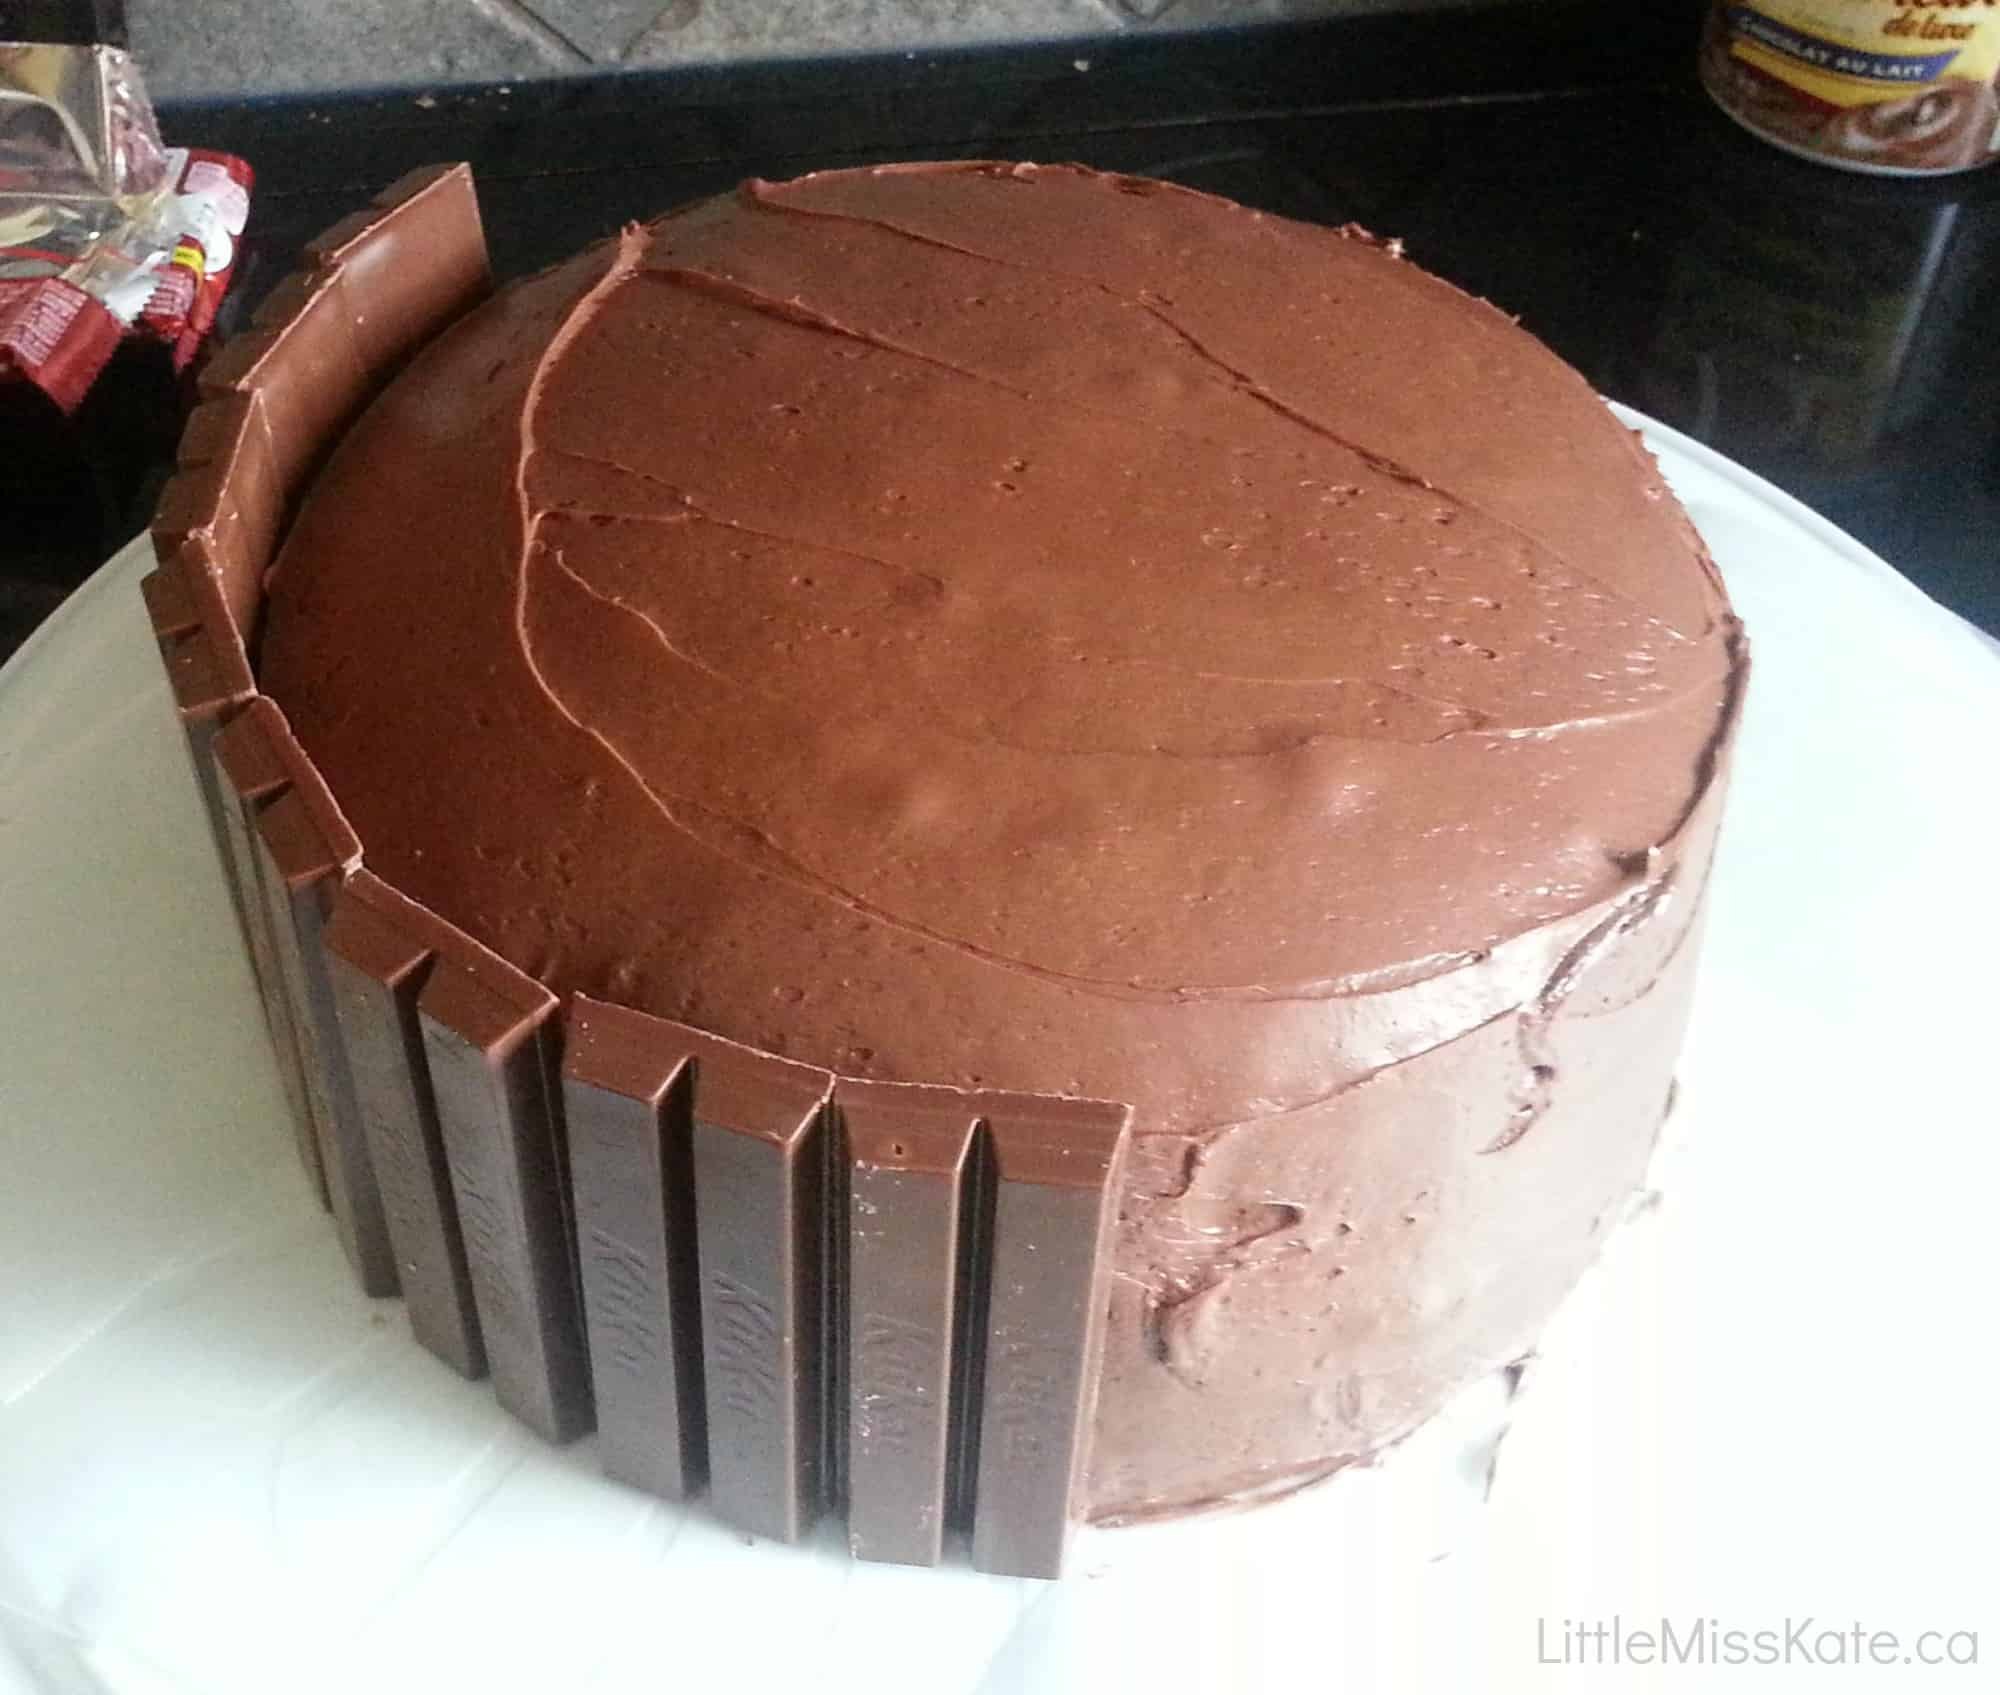 How to make a Kit Kat Cake - Easy cake decorating idea